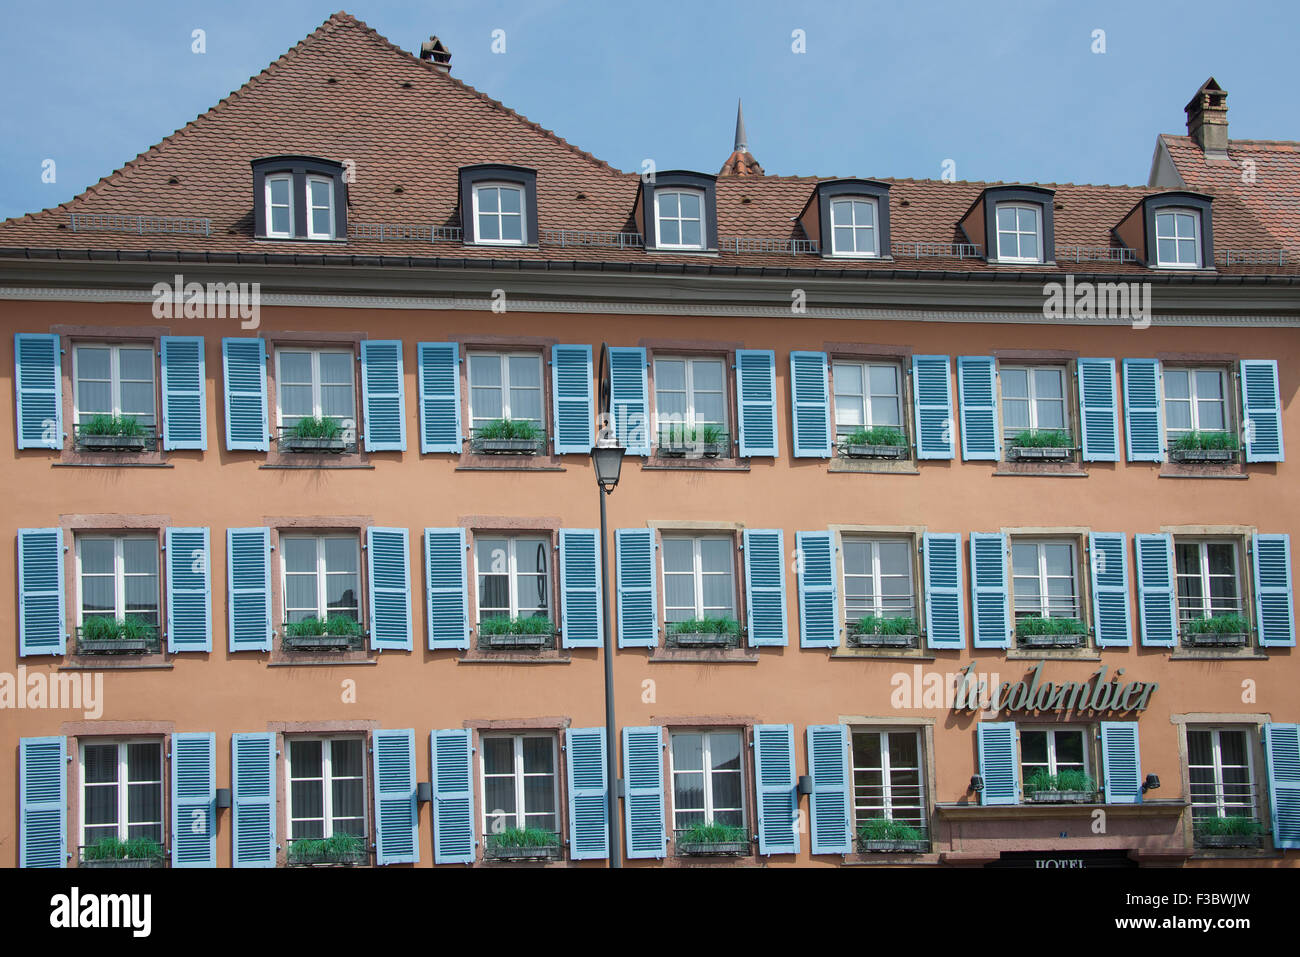 Hotel with traditional blue shuttered windows Petit Venise Colmar Alsace France - Stock Image